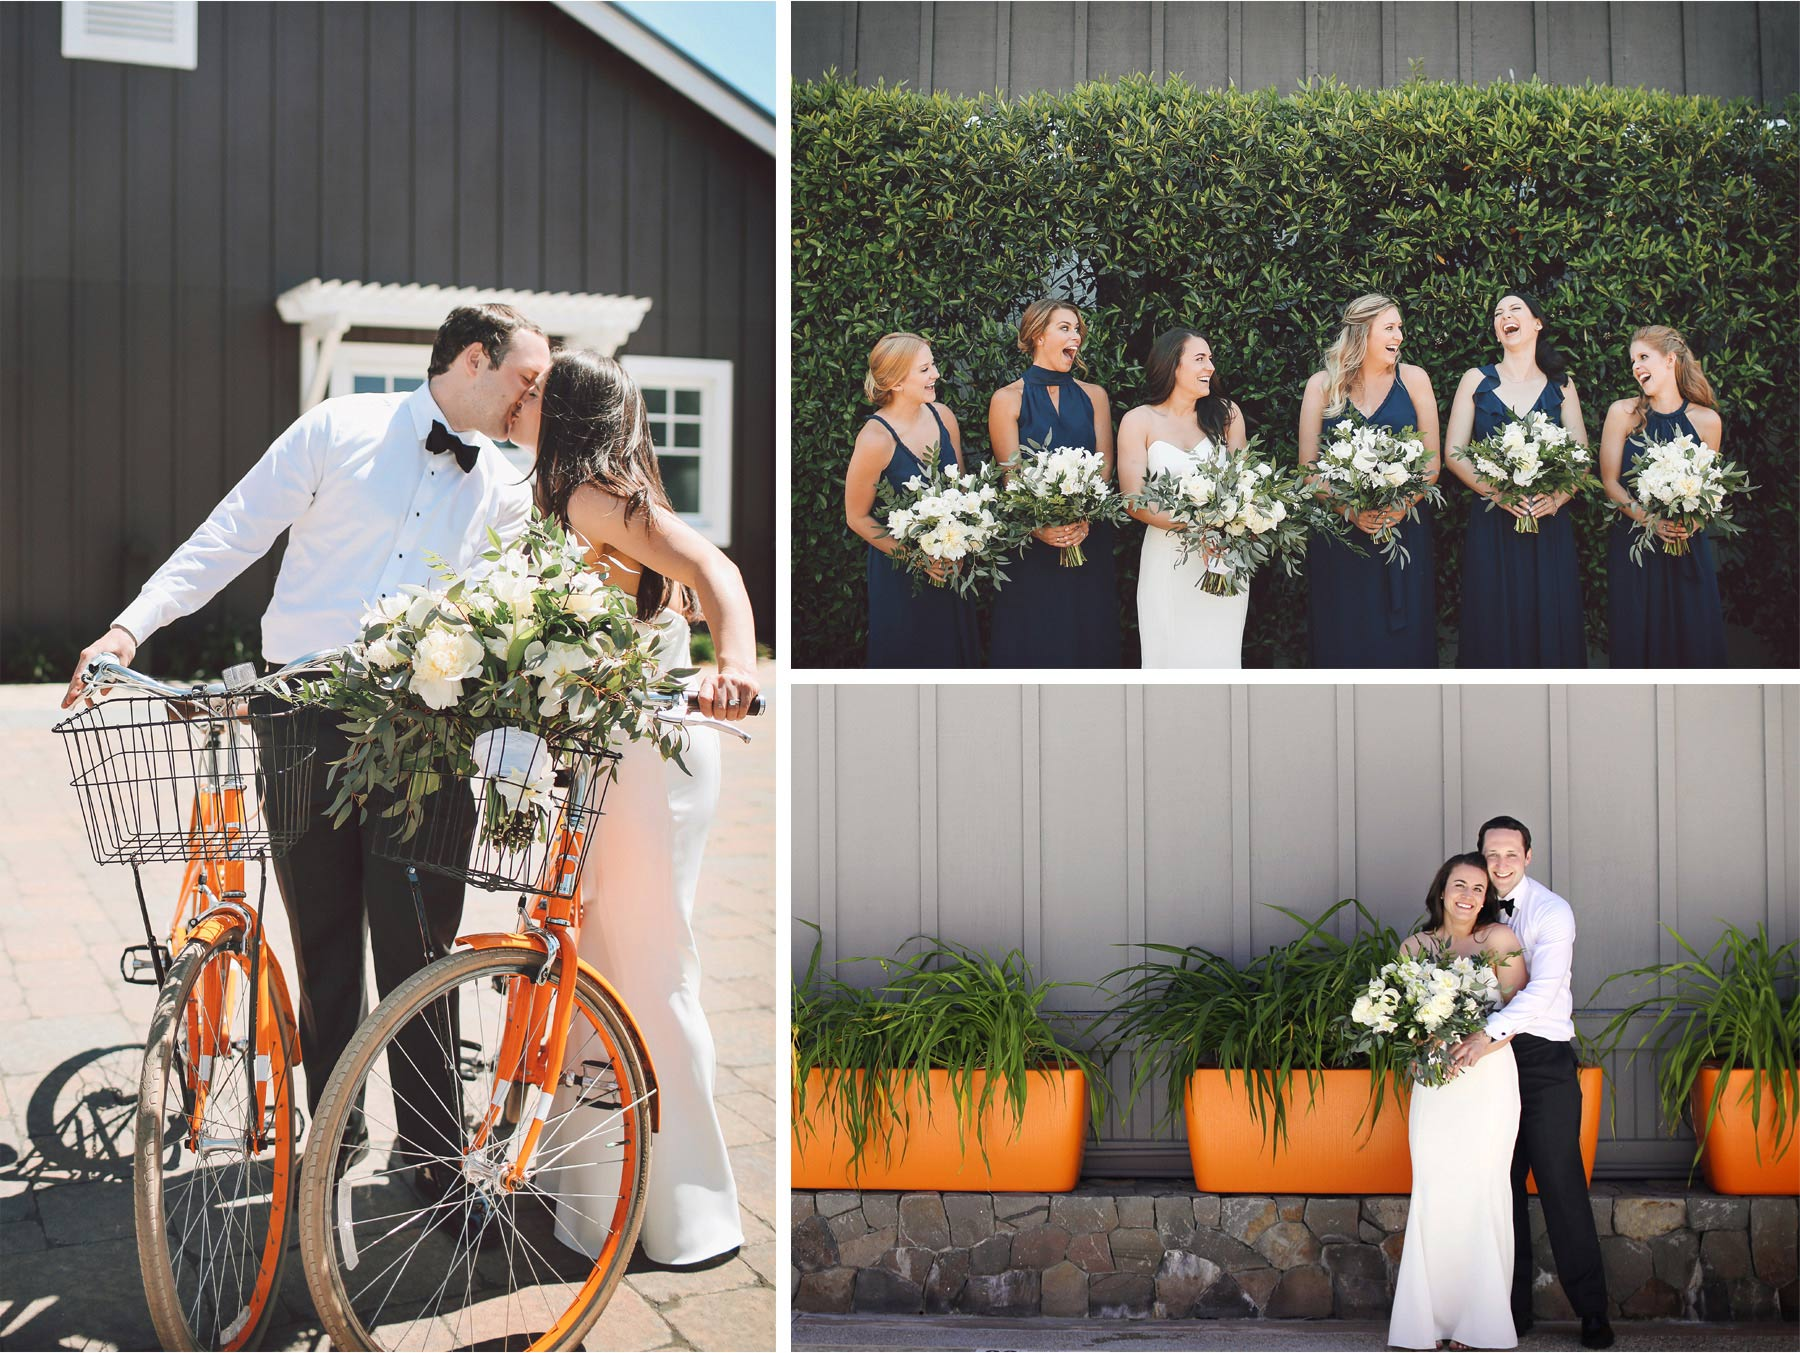 11-Napa-California-Wedding-Photographer-by-Andrew-Vick-Photography-Spring-Destination-Carneros-Resort-and-Spa-Bride-Groom-Bridesmaids-Bikes-Bicycles-Flowers-Kiss-Vintage-Alex-and-Roger.jpg